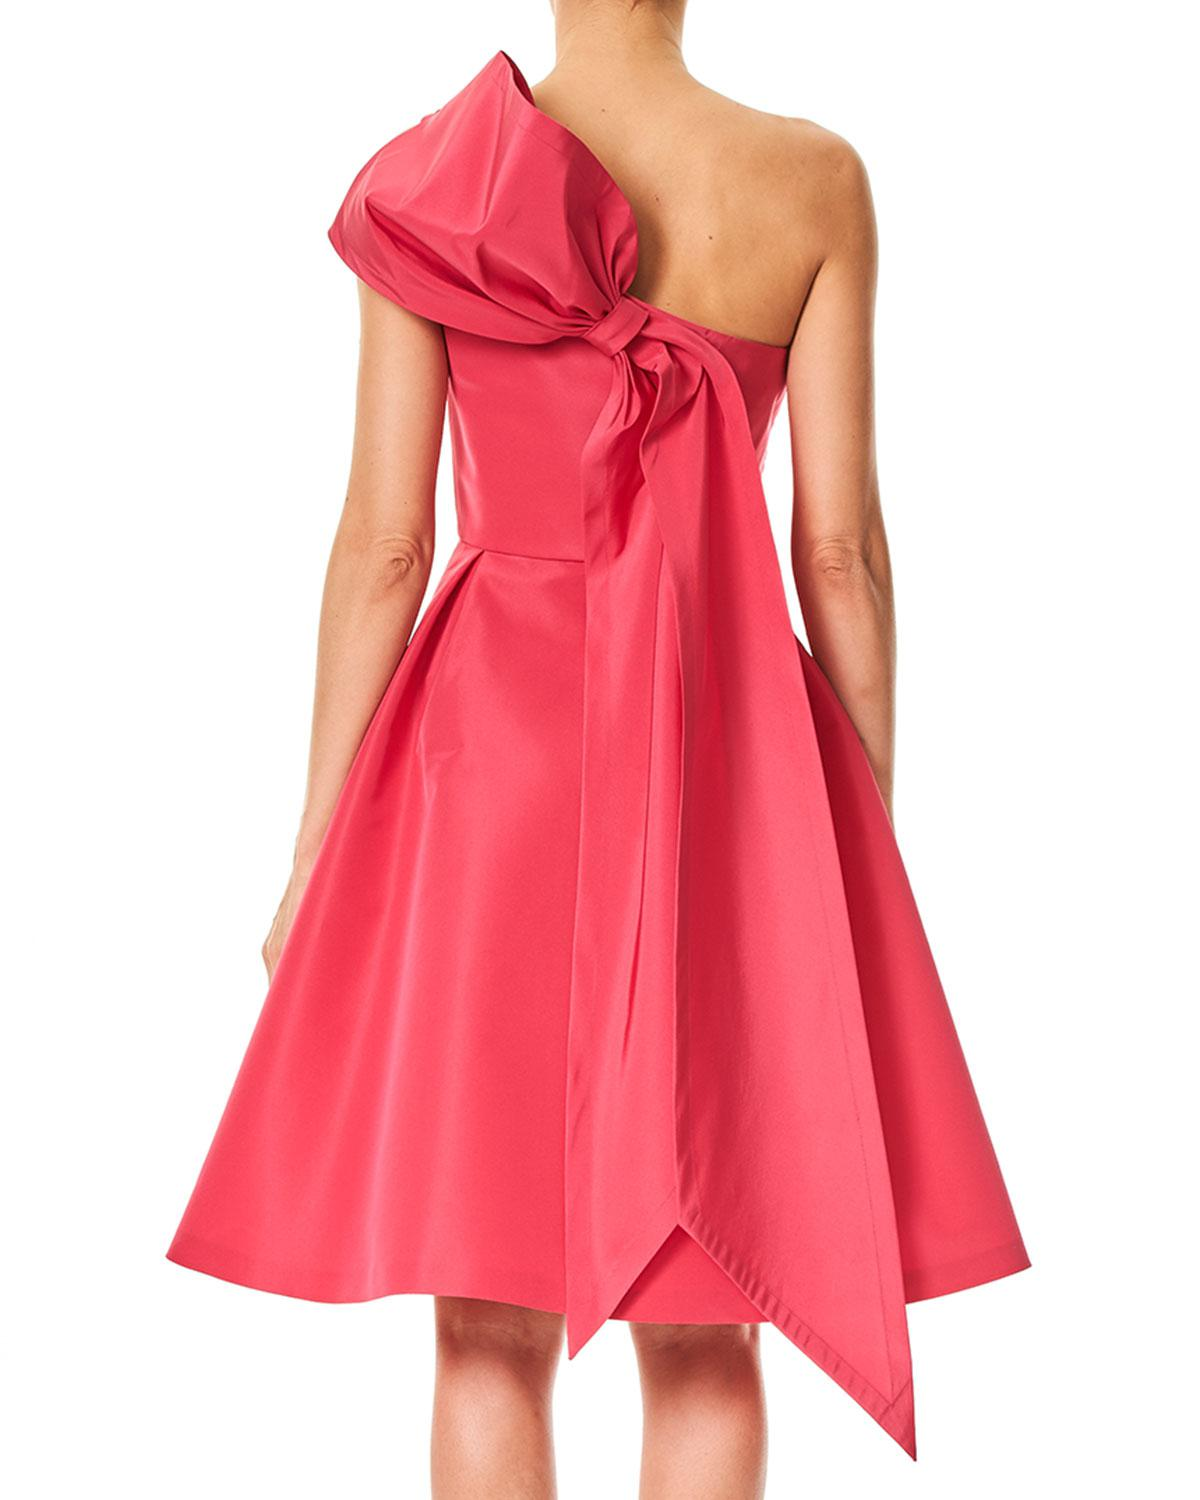 ce12cdafb7e Lyst - Carolina Herrera One-shoulder Cocktail Dress With Back Bow Detail in  Red - Save 30%